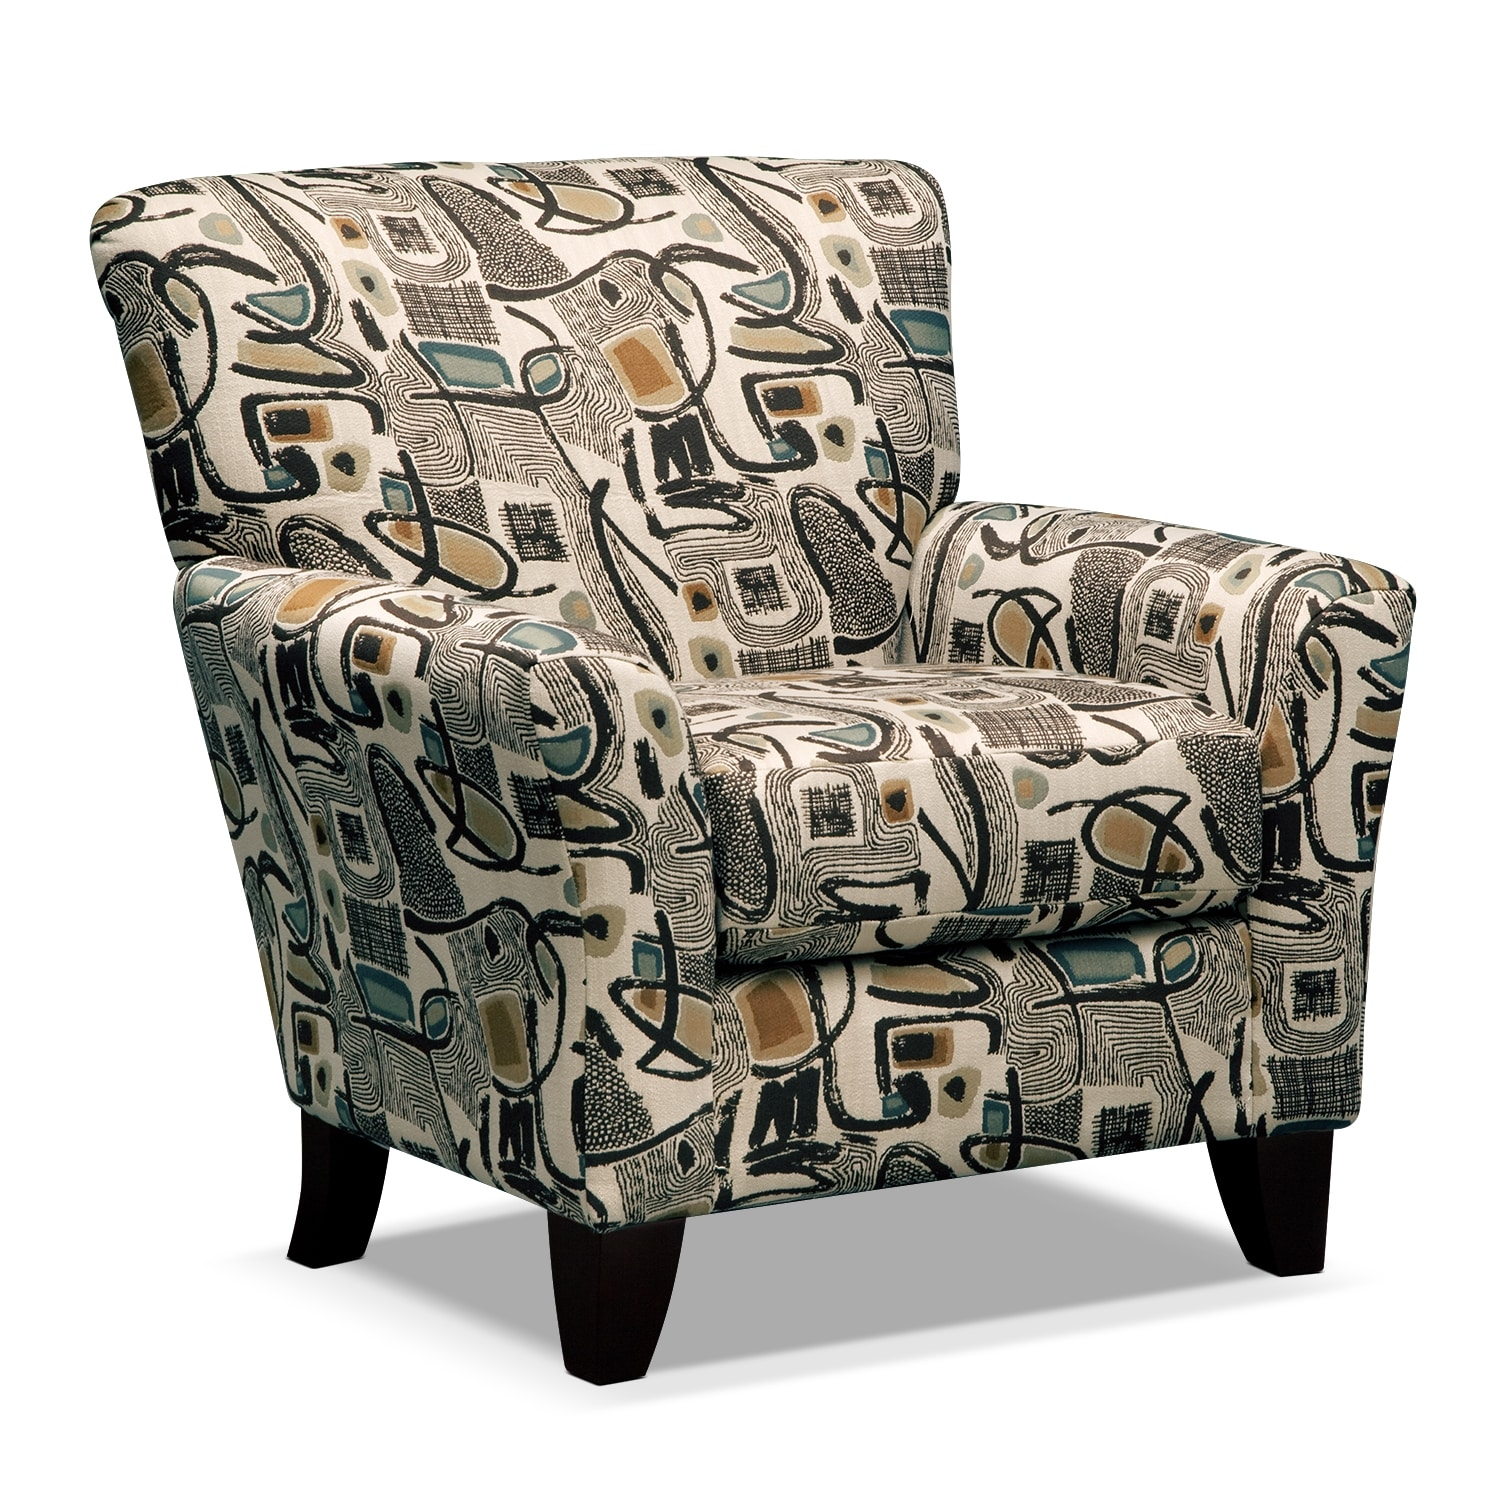 ... II 3 Pc. Living Room w/Accent Chair | American Signature Furniture